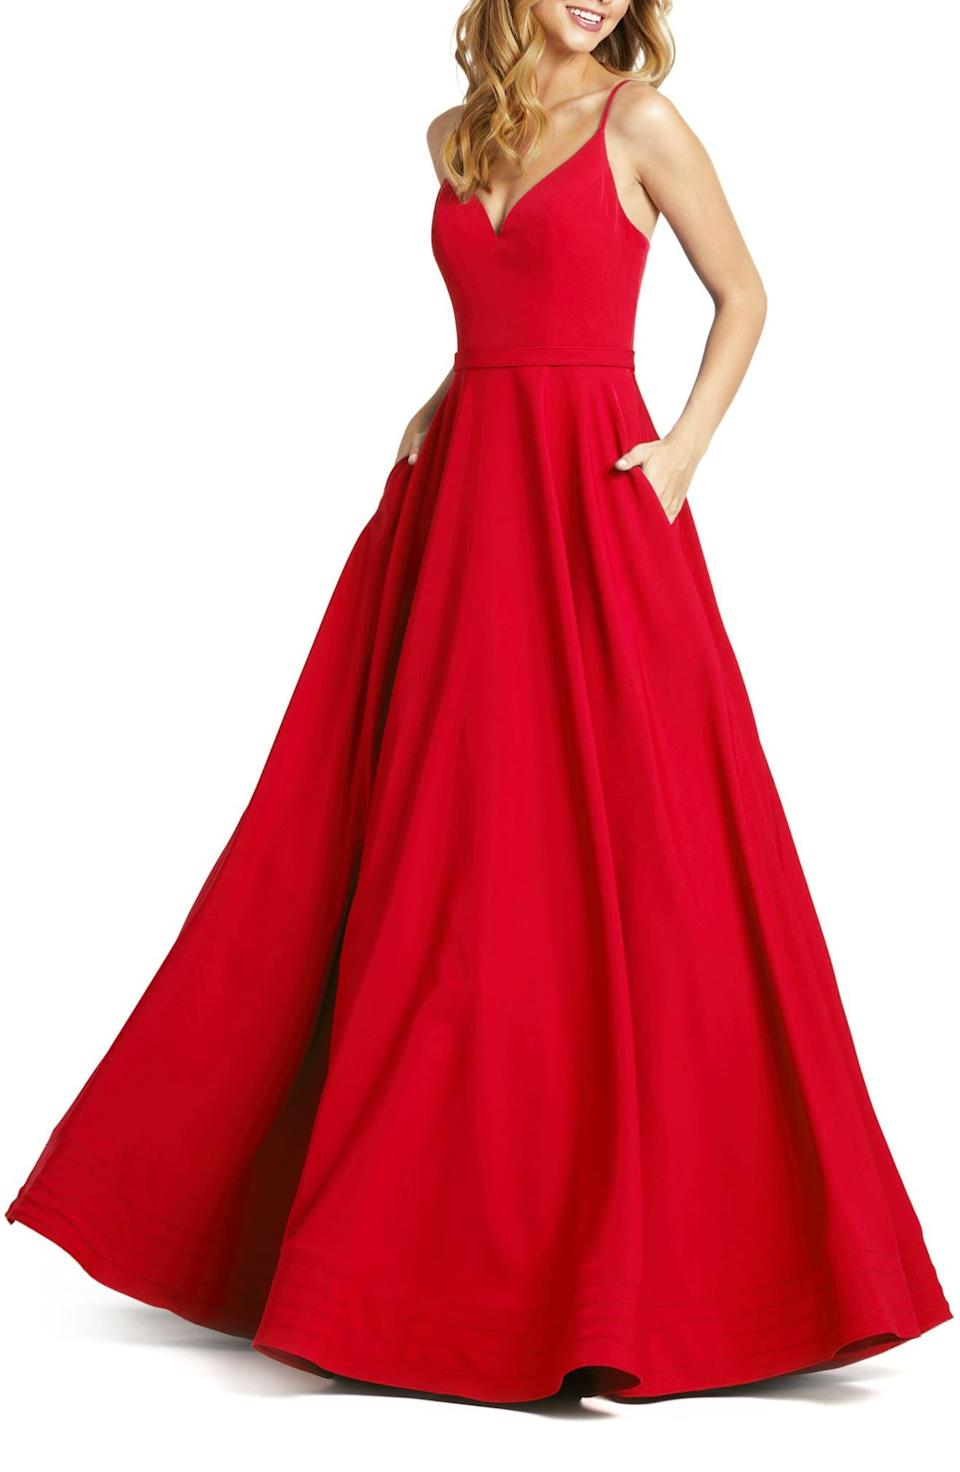 """<h2>Mac Duggal Crepe Gown In Red</h2><br>Nothing makes a statement like a fire-engine red, floor-length gown. <br><br><em>Shop Mac Duggal at <strong><a href=""""https://www.nordstrom.com/brands/mac-duggal--11958"""" rel=""""nofollow noopener"""" target=""""_blank"""" data-ylk=""""slk:Nordstrom"""" class=""""link rapid-noclick-resp"""">Nordstrom</a></strong></em><br><br><strong>Mac Duggal</strong> V-Neck Crepe Ballgown, $, available at <a href=""""https://go.skimresources.com/?id=30283X879131&url=https%3A%2F%2Fwww.nordstrom.com%2Fs%2Fmac-duggal-v-neck-crepe-ballgown%2F5370911%3F%26color%3Dred"""" rel=""""nofollow noopener"""" target=""""_blank"""" data-ylk=""""slk:Nordstrom"""" class=""""link rapid-noclick-resp"""">Nordstrom</a>"""